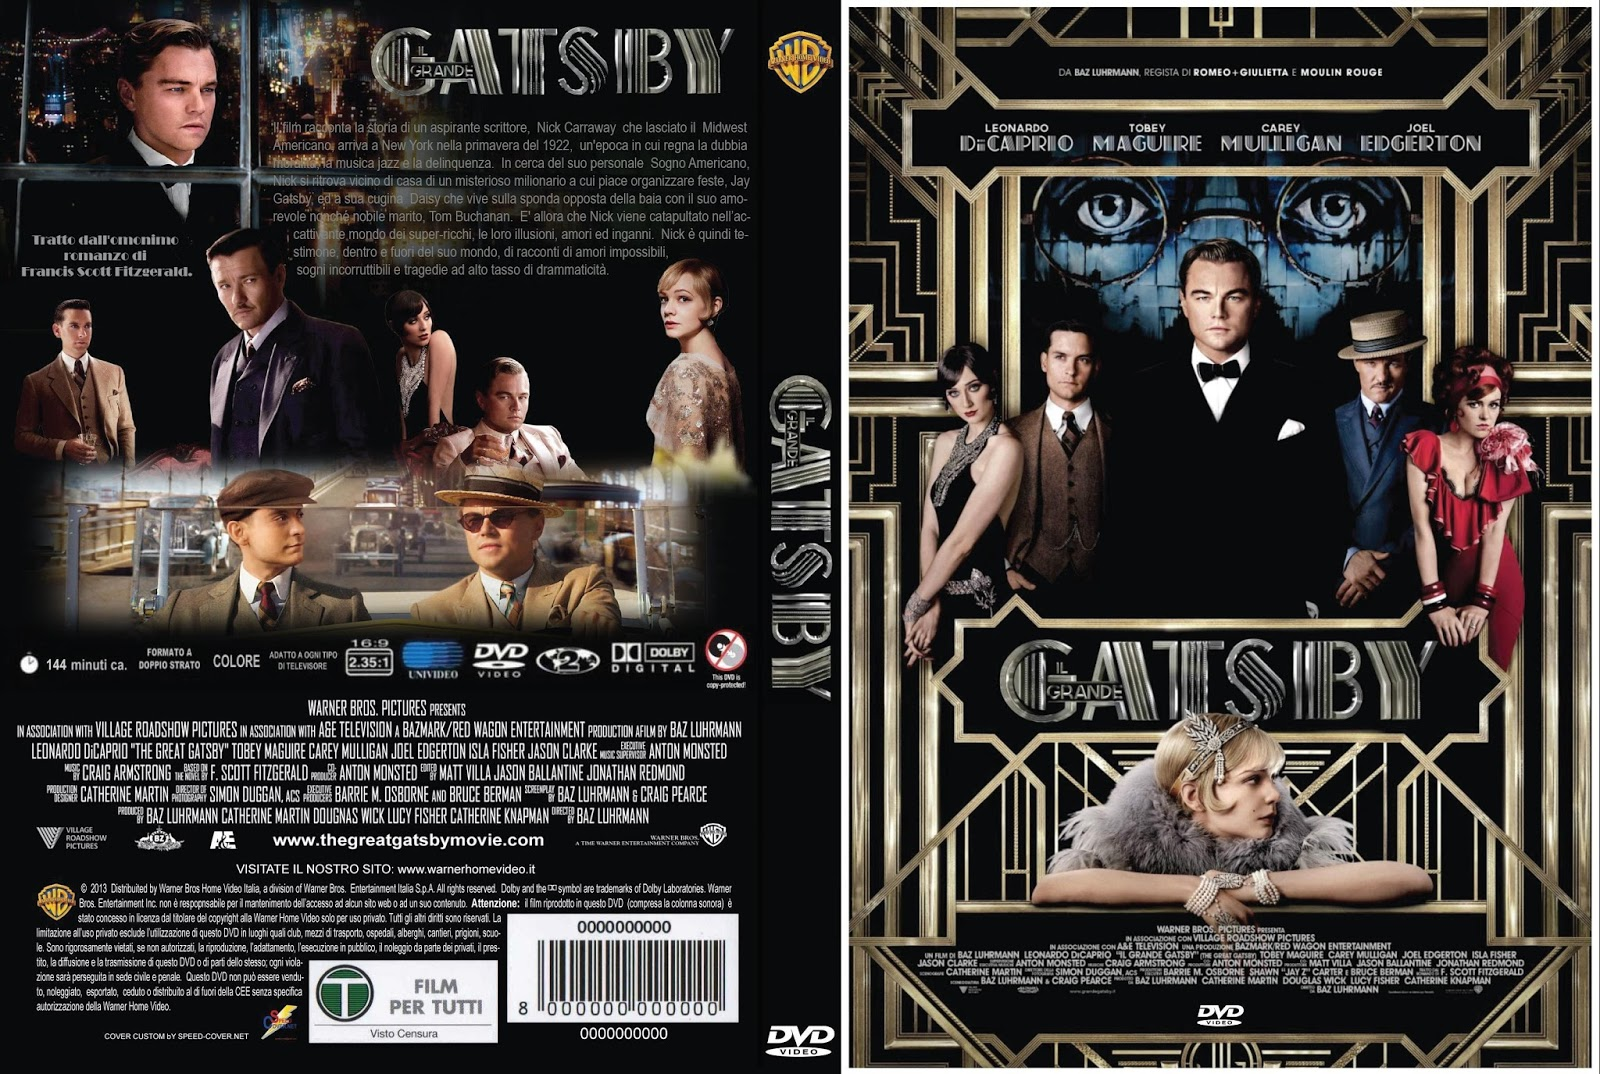 illusions in the great gatsby Illusion vs reality in 'the great gatsby' by f scott fitzgerald posted on march 5, 2013 by armin november 28, 2013 through the hustle of everyday life, one undergoes life and the struggles that follow.